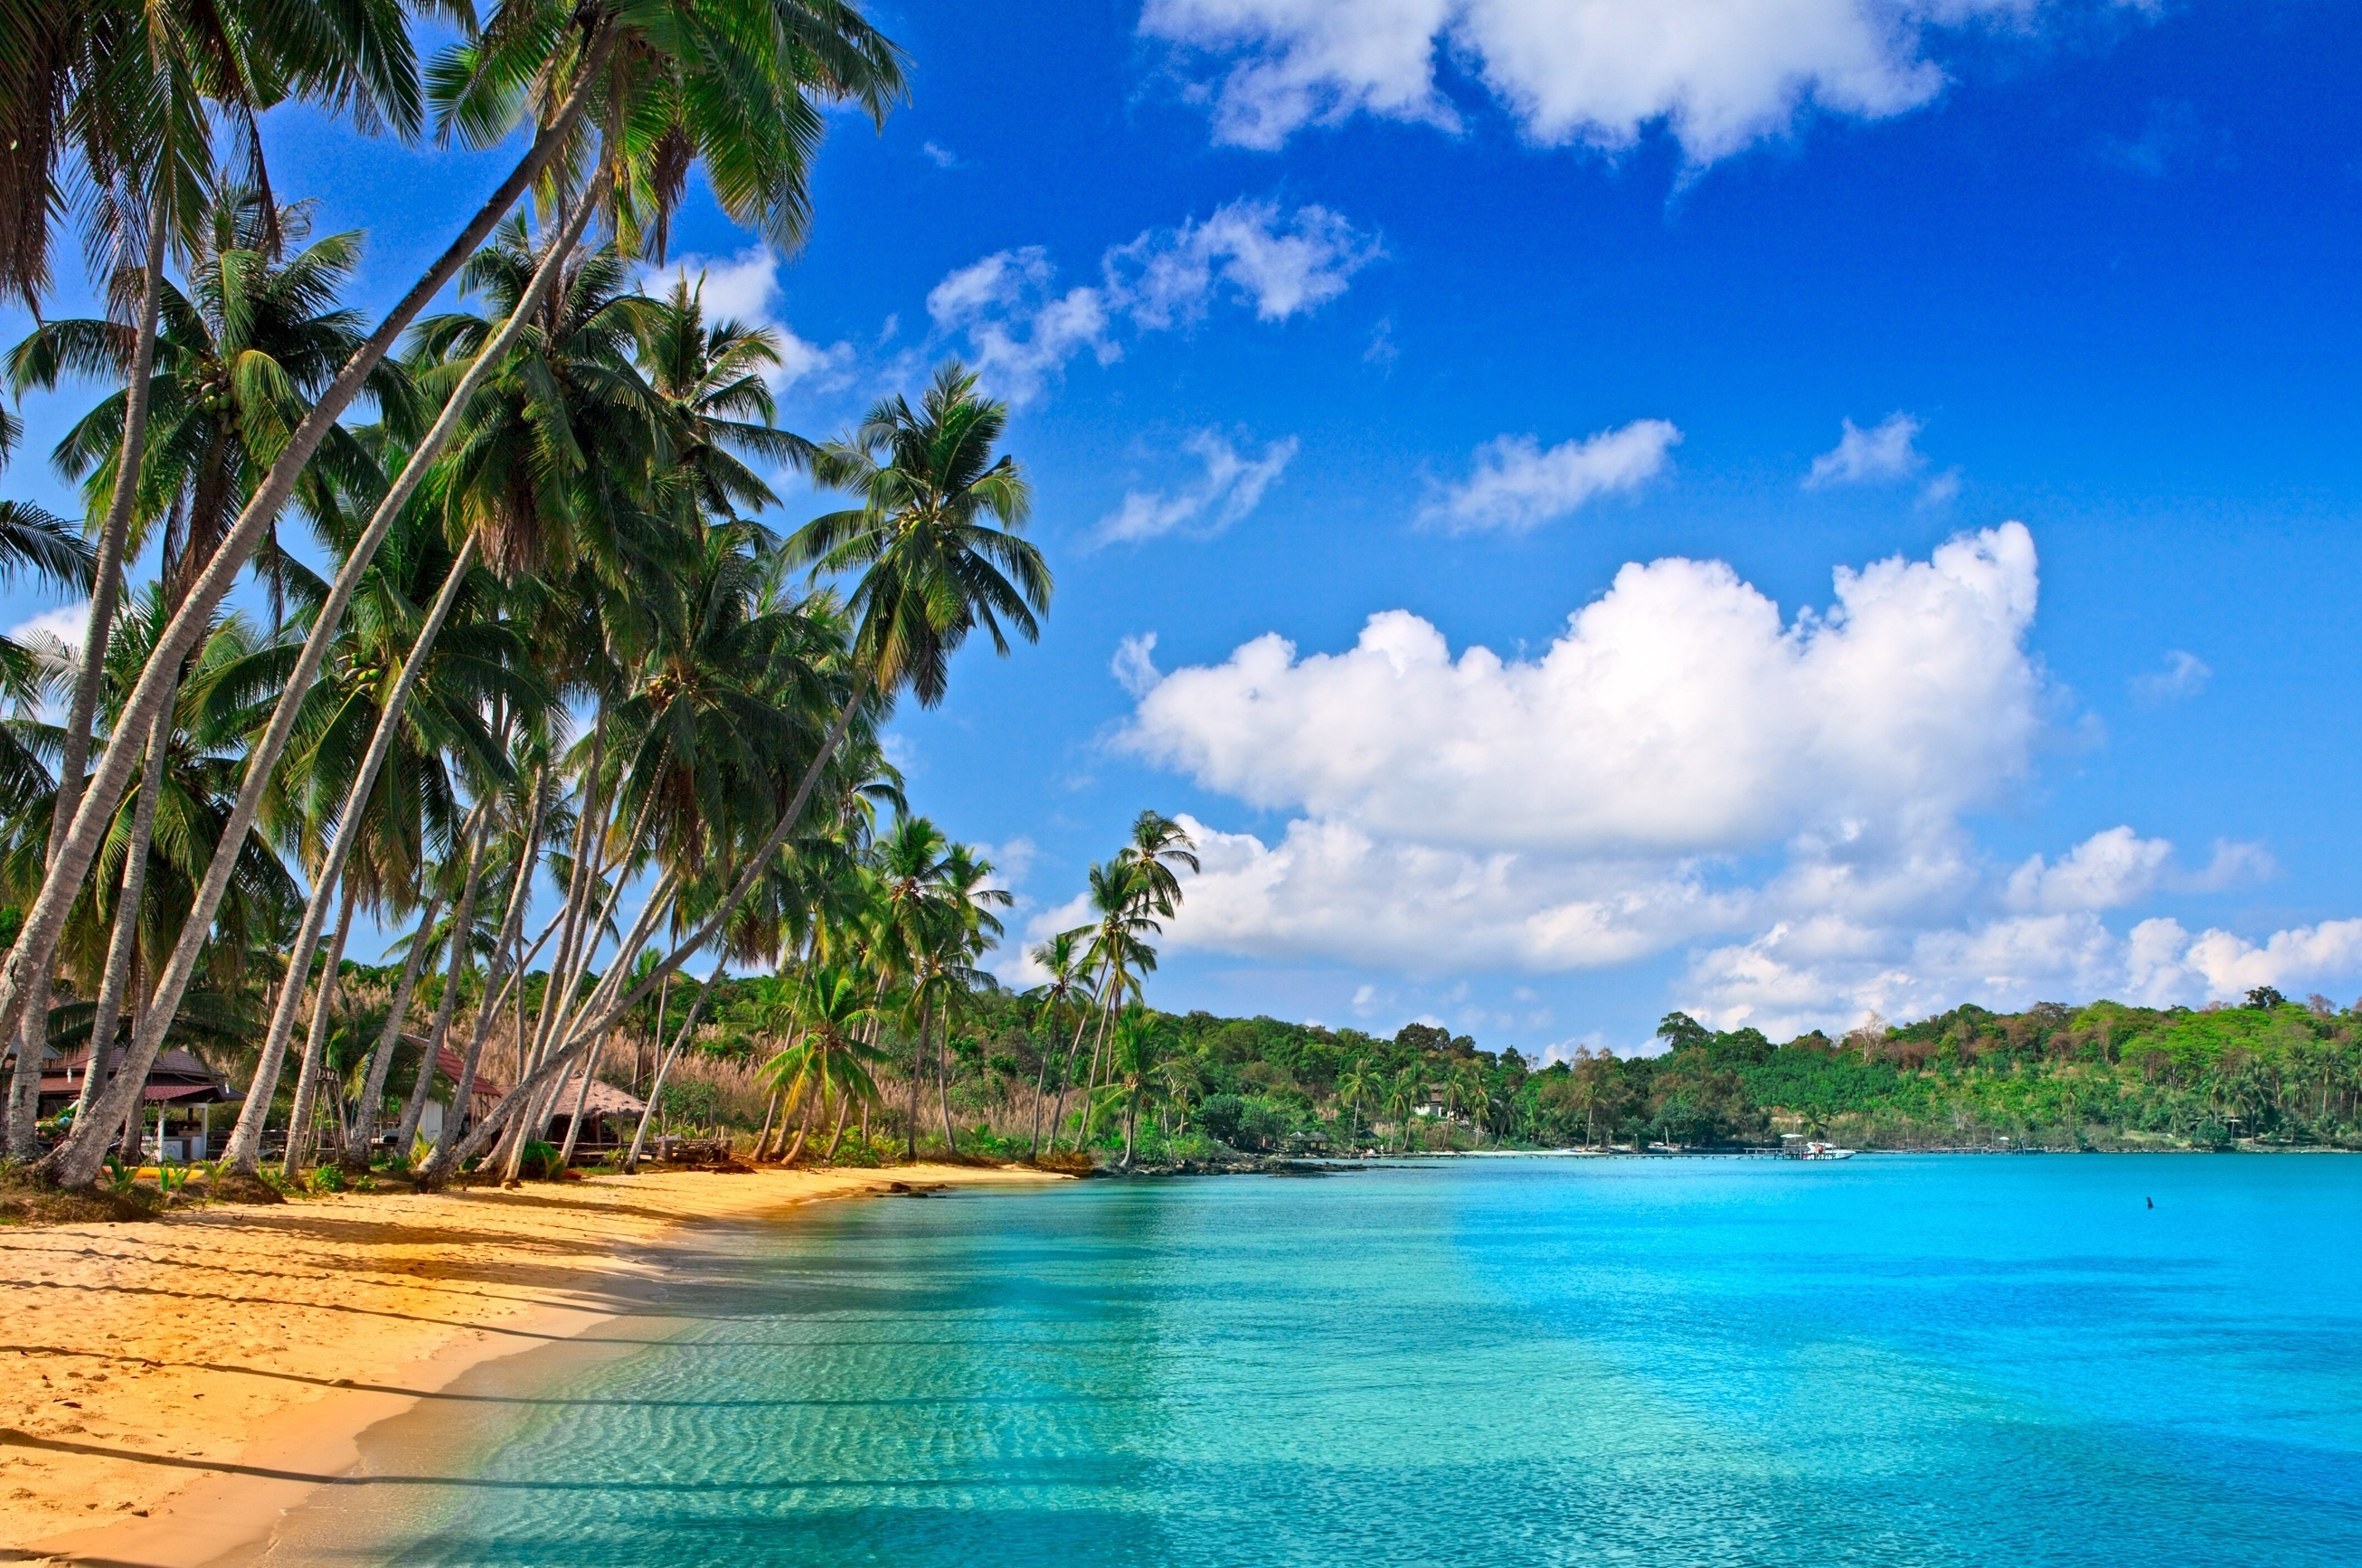 19718 download wallpaper Landscape, Sky, Sea, Clouds, Beach, Palms screensavers and pictures for free